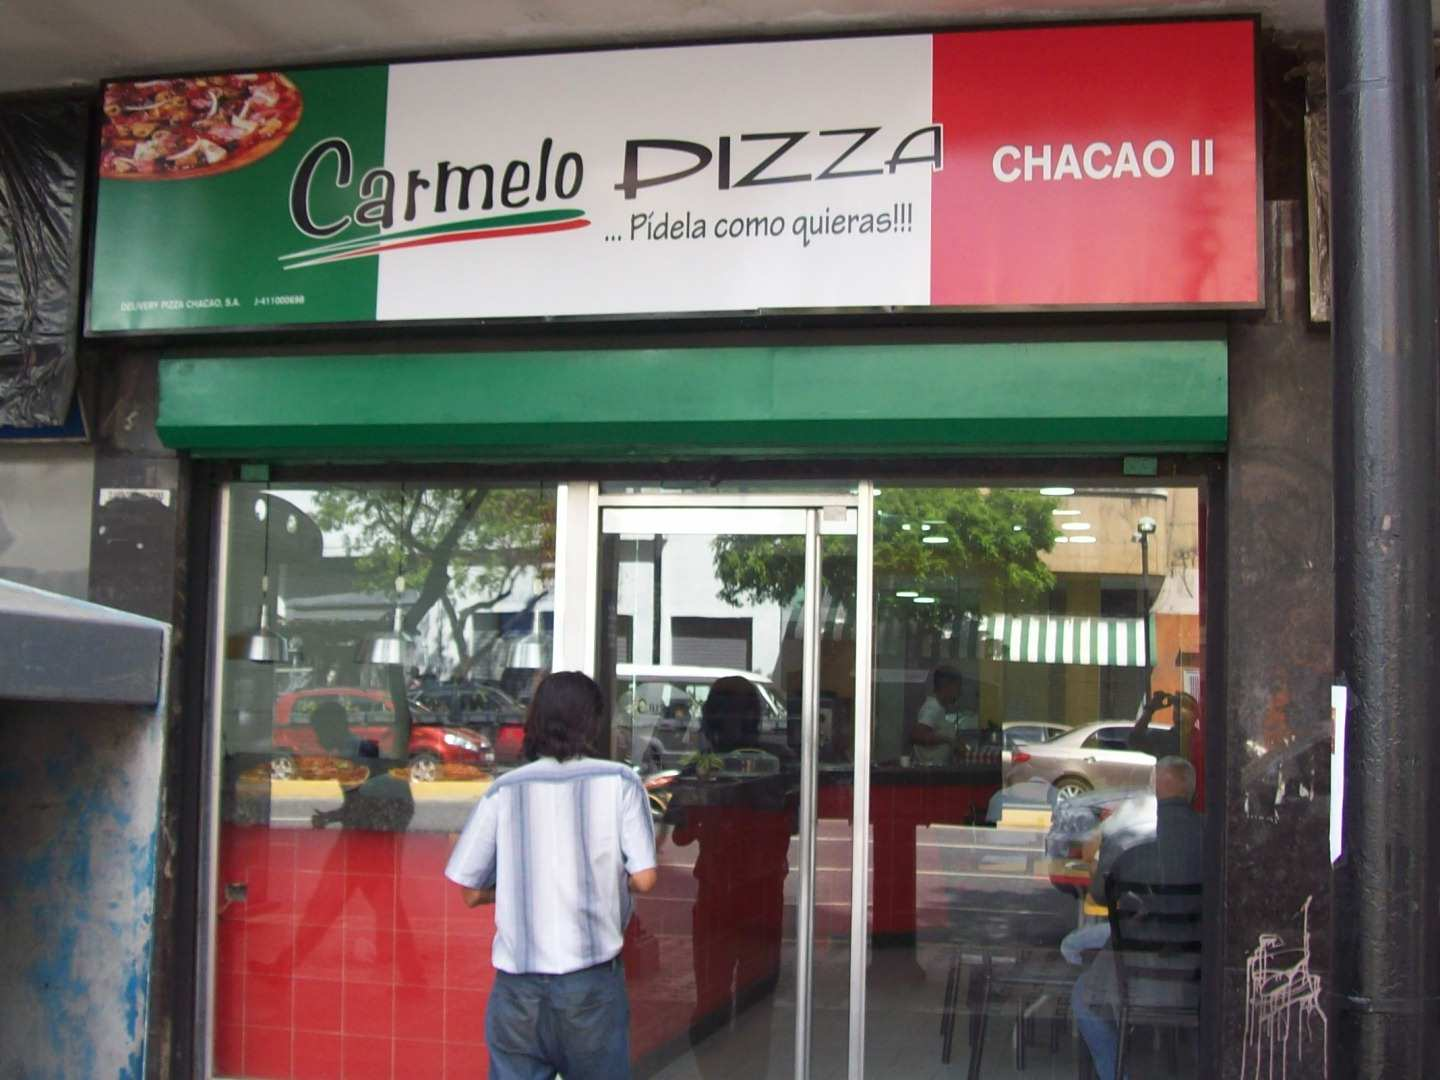 Pizza Chacao